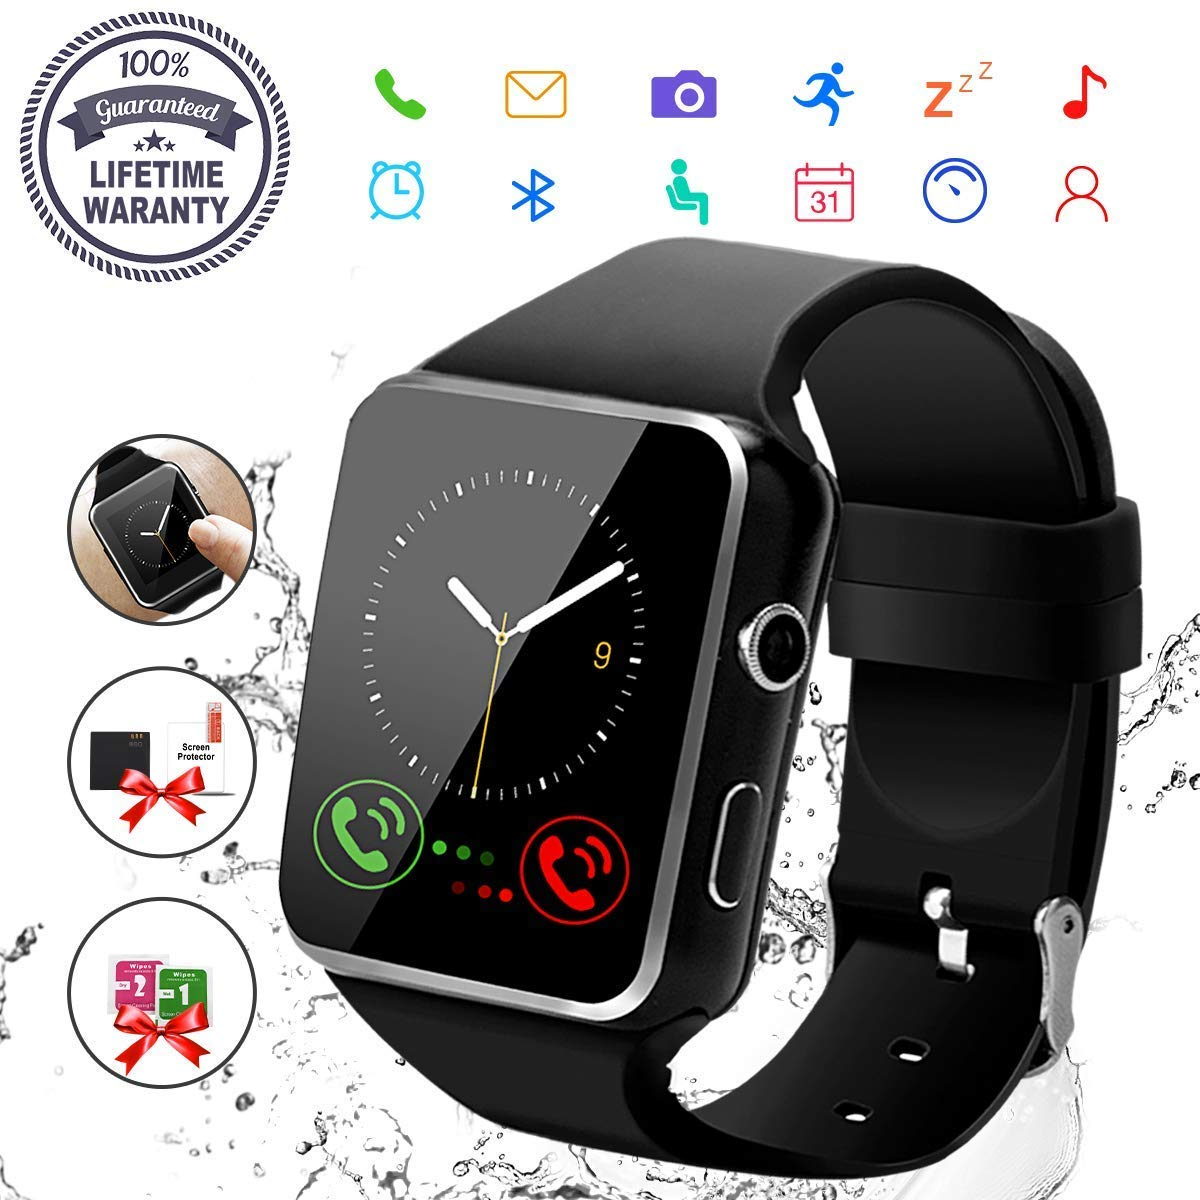 Smart Watch,Bluetooth Smartwatch Touch Screen Wrist Watch with Camera/SIM Card Slot,Waterproof Phone Smart Watch for Men Women Sports Fitness Tracker Compatible Android Phones Samsung Huawei Black